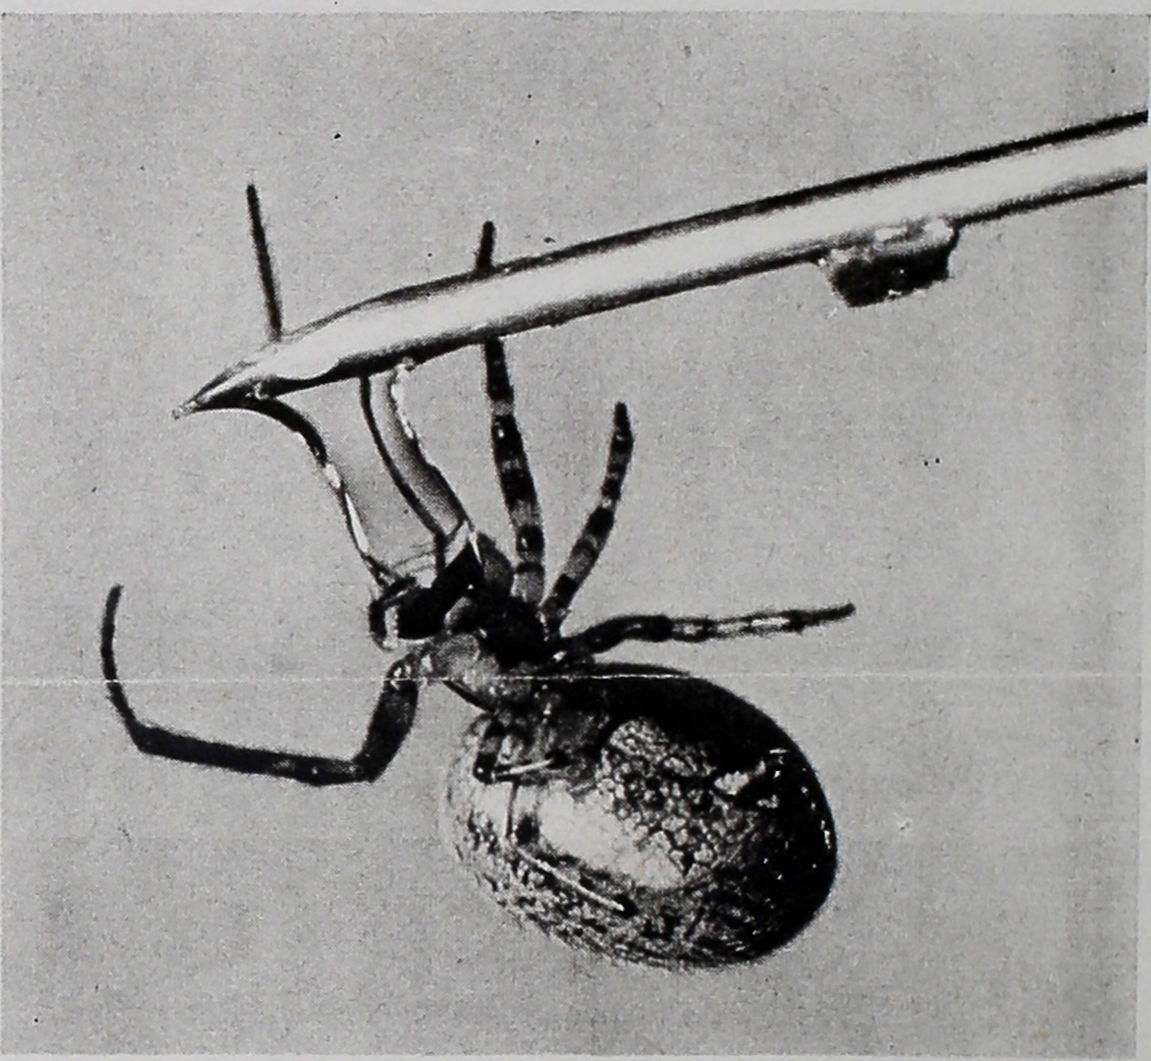 1954-LIFE-Spiders-Spin-7